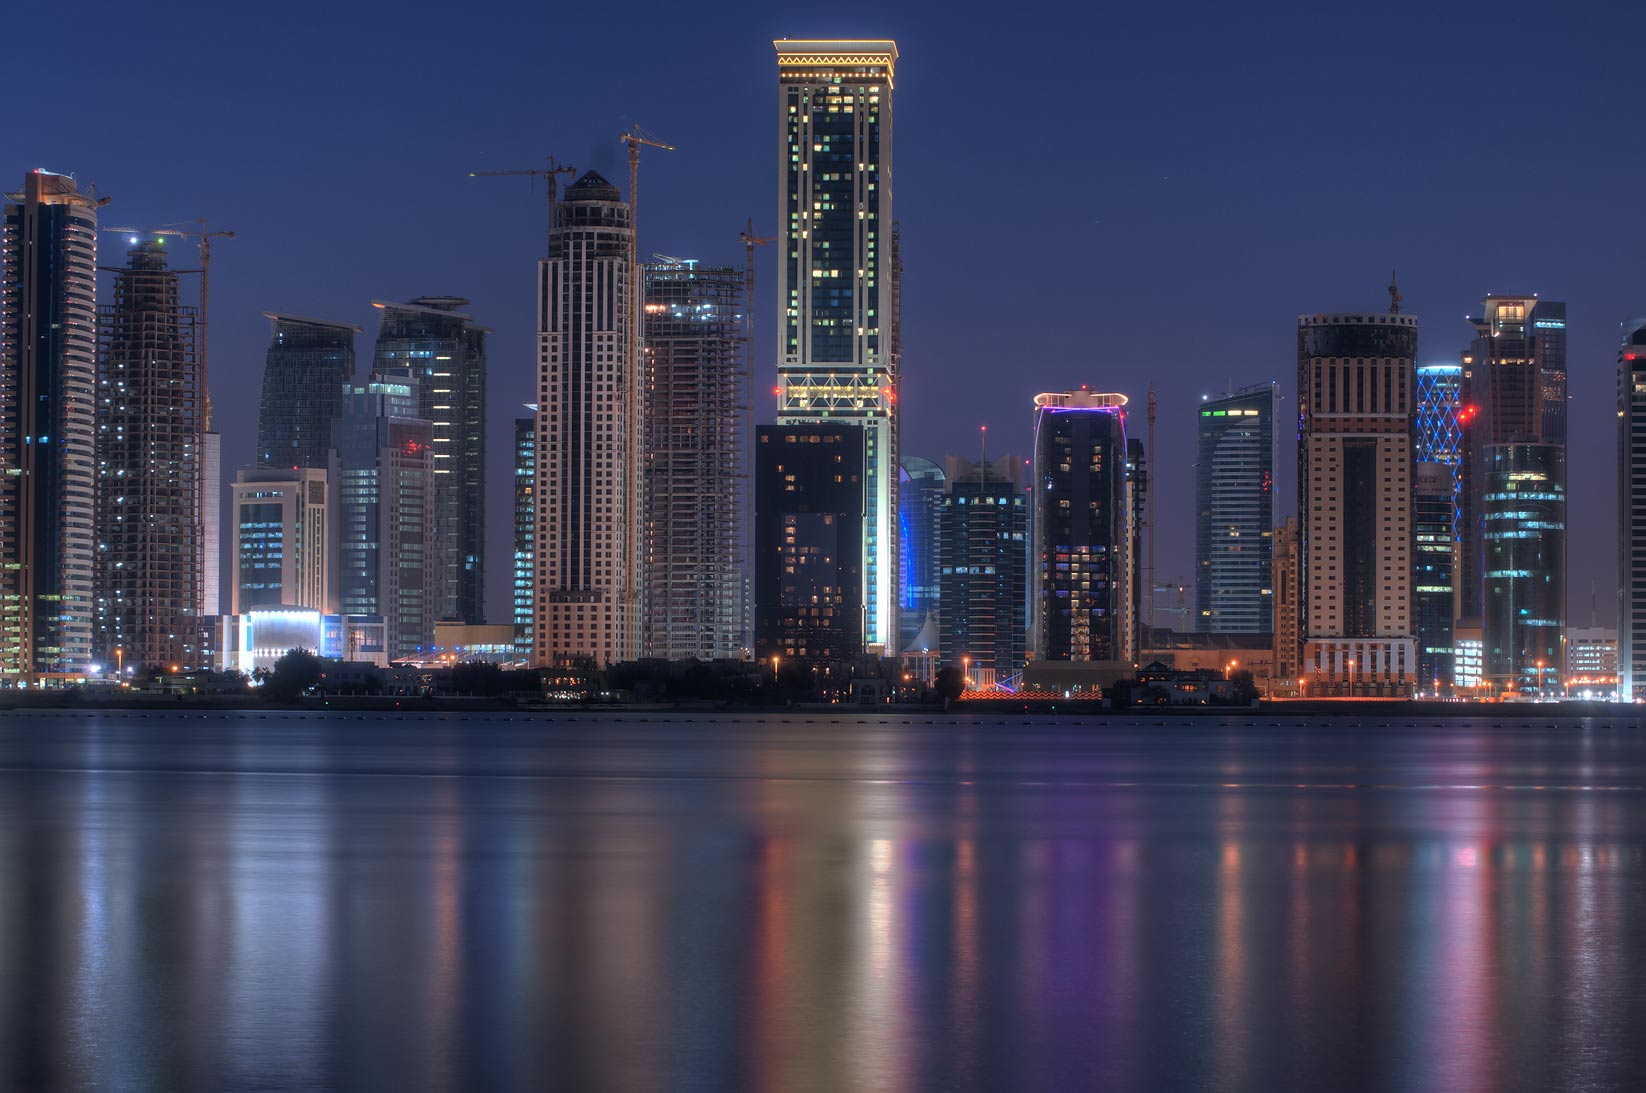 Area around Kempinski Hotel of West Bay from a...of InterContinental Hotel. Doha, Qatar